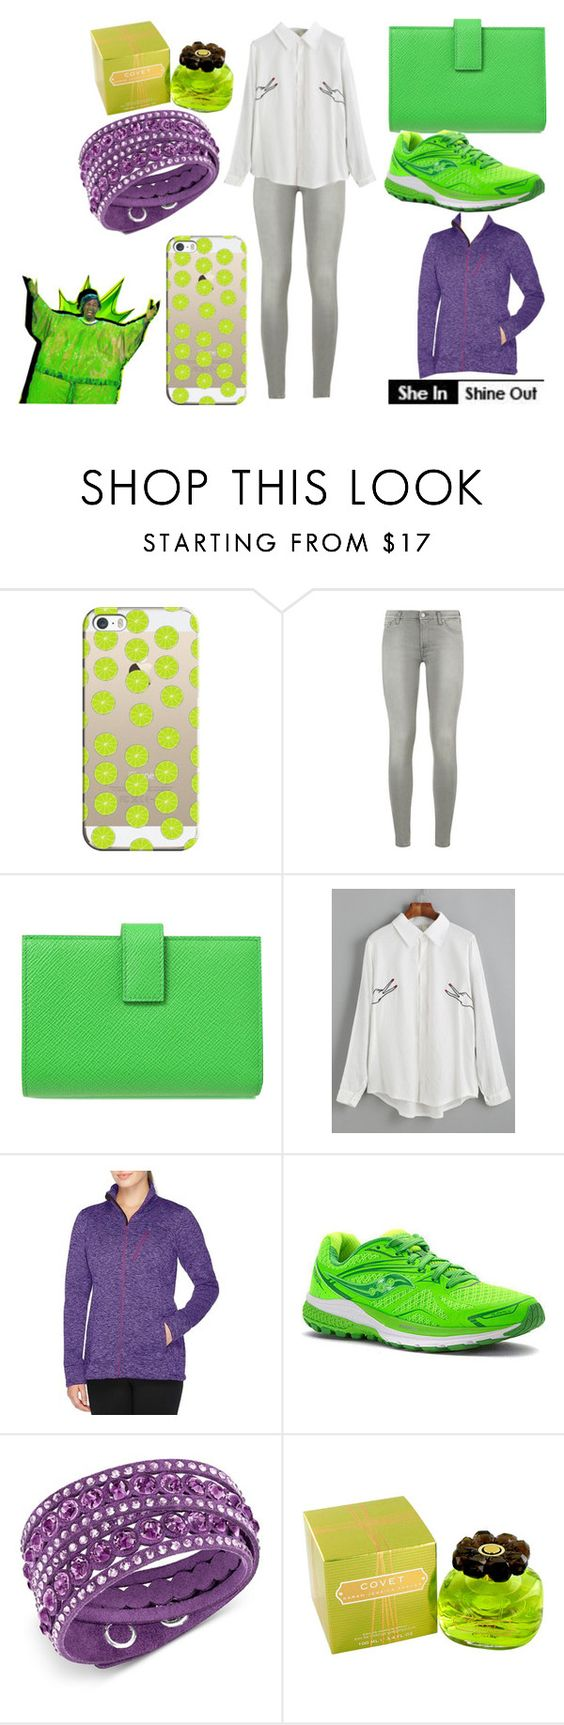 """Stay young, go dancing"" by sweetimperfection ❤ liked on Polyvore featuring Casetify, 7 For All Mankind, Smythson, Stonewear Designs, Saucony, Swarovski and Sarah Jessica Parker"